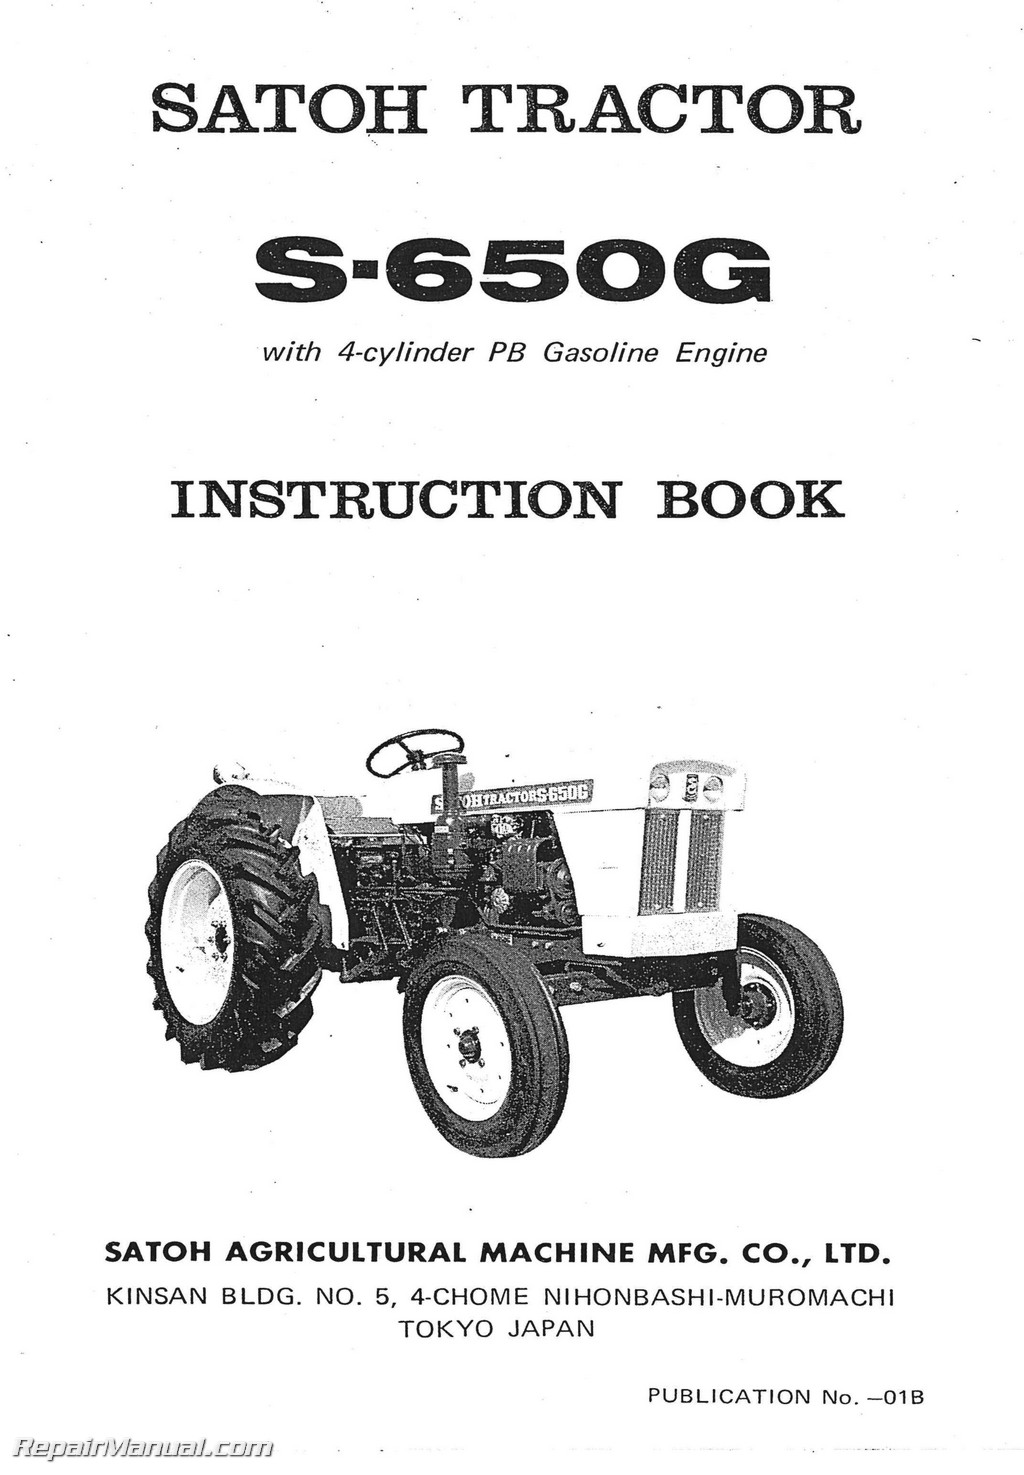 Satoh Tractor 4 Cylinder Engine Diagram Solution Of Your Wiring Inline S650g Operators Manual Rh Repairmanual Com 24 Liter